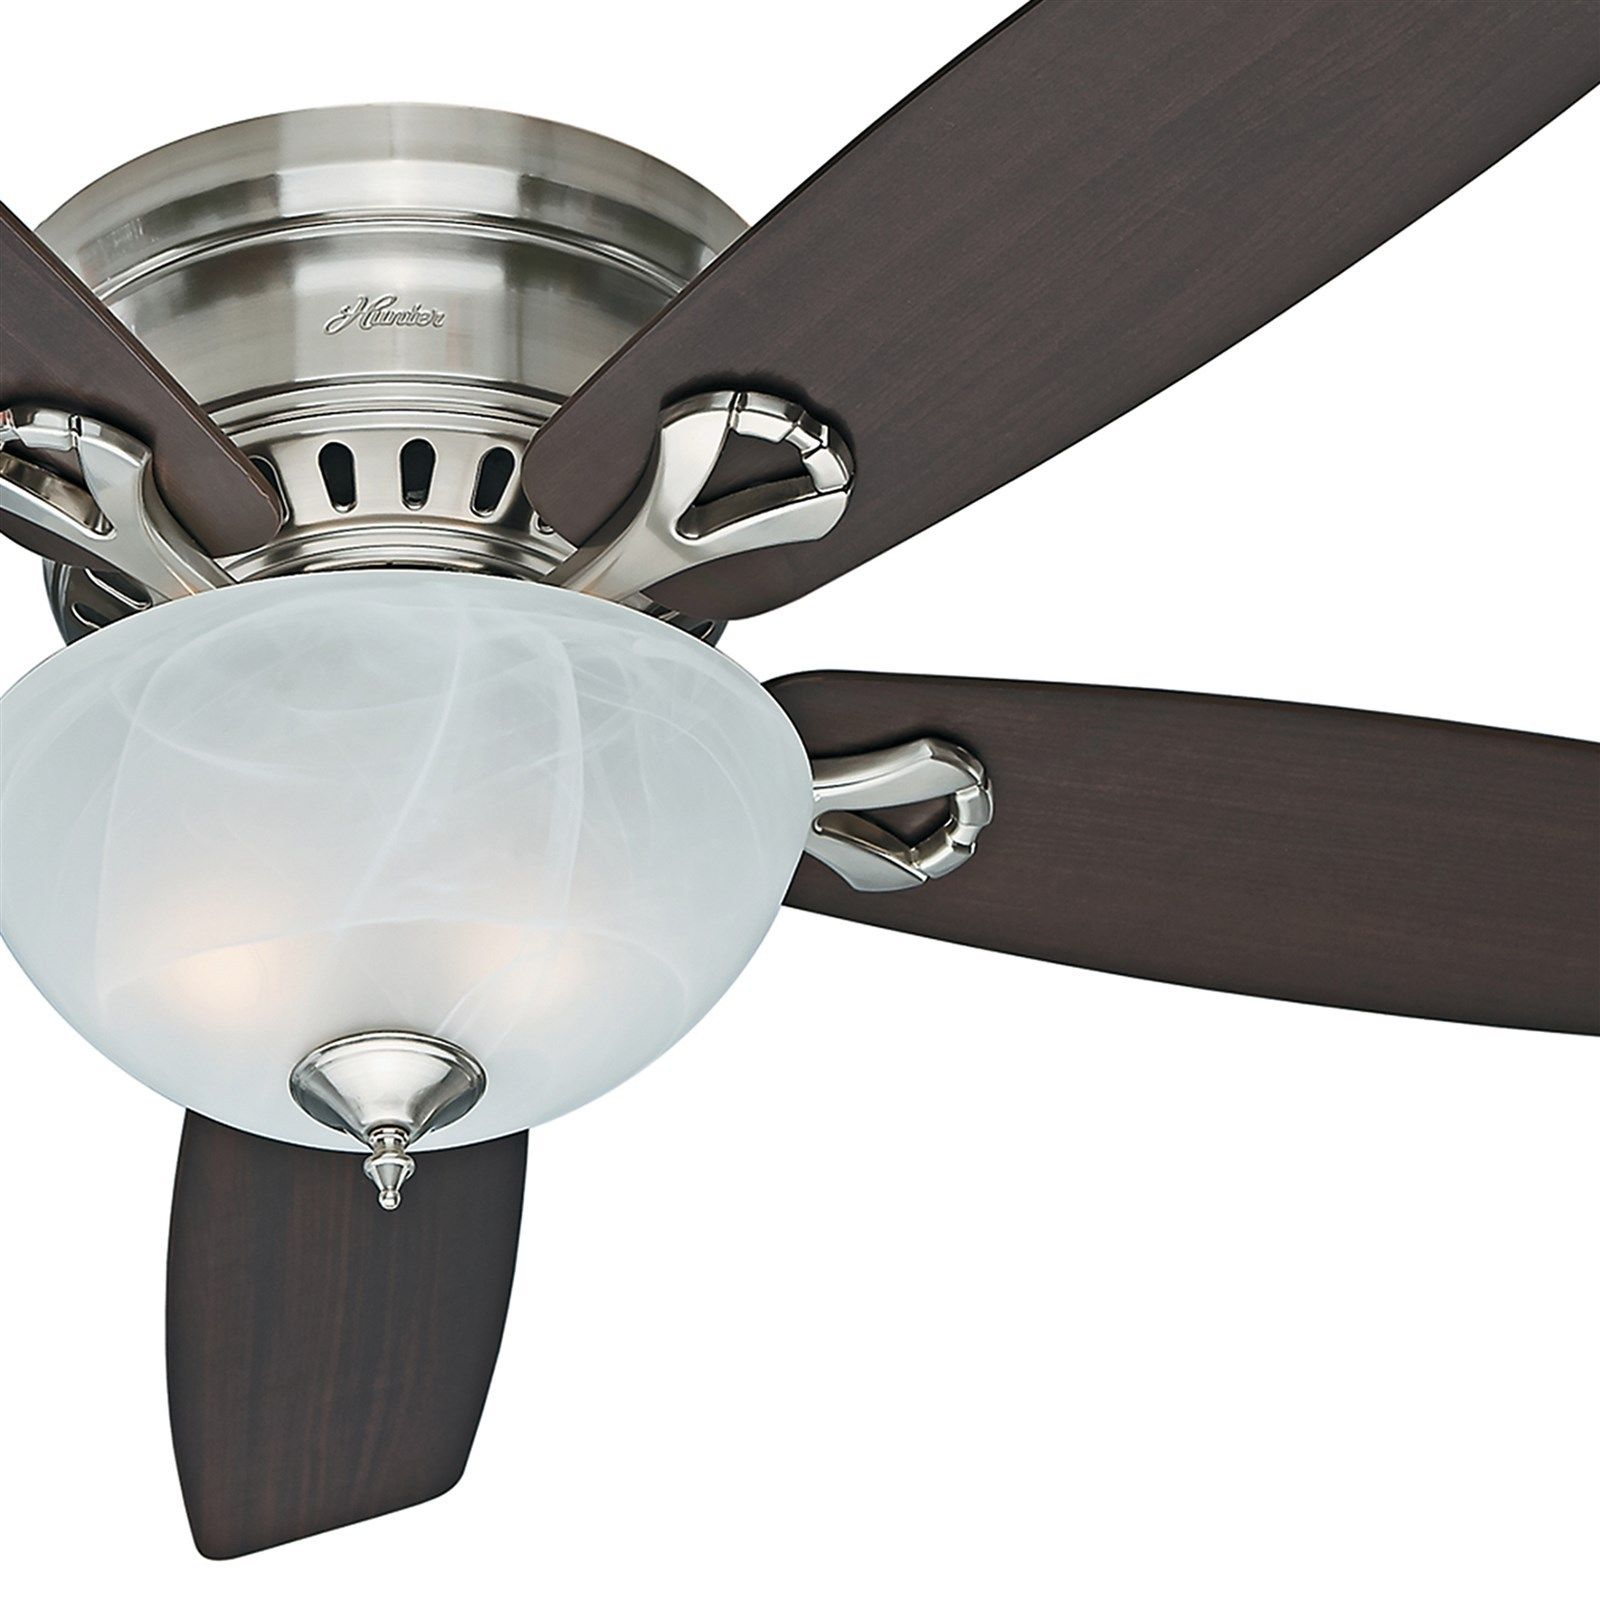 10 things you should know about low profile ceiling fan light way to use the normal low profile ceiling fan aloadofball Image collections